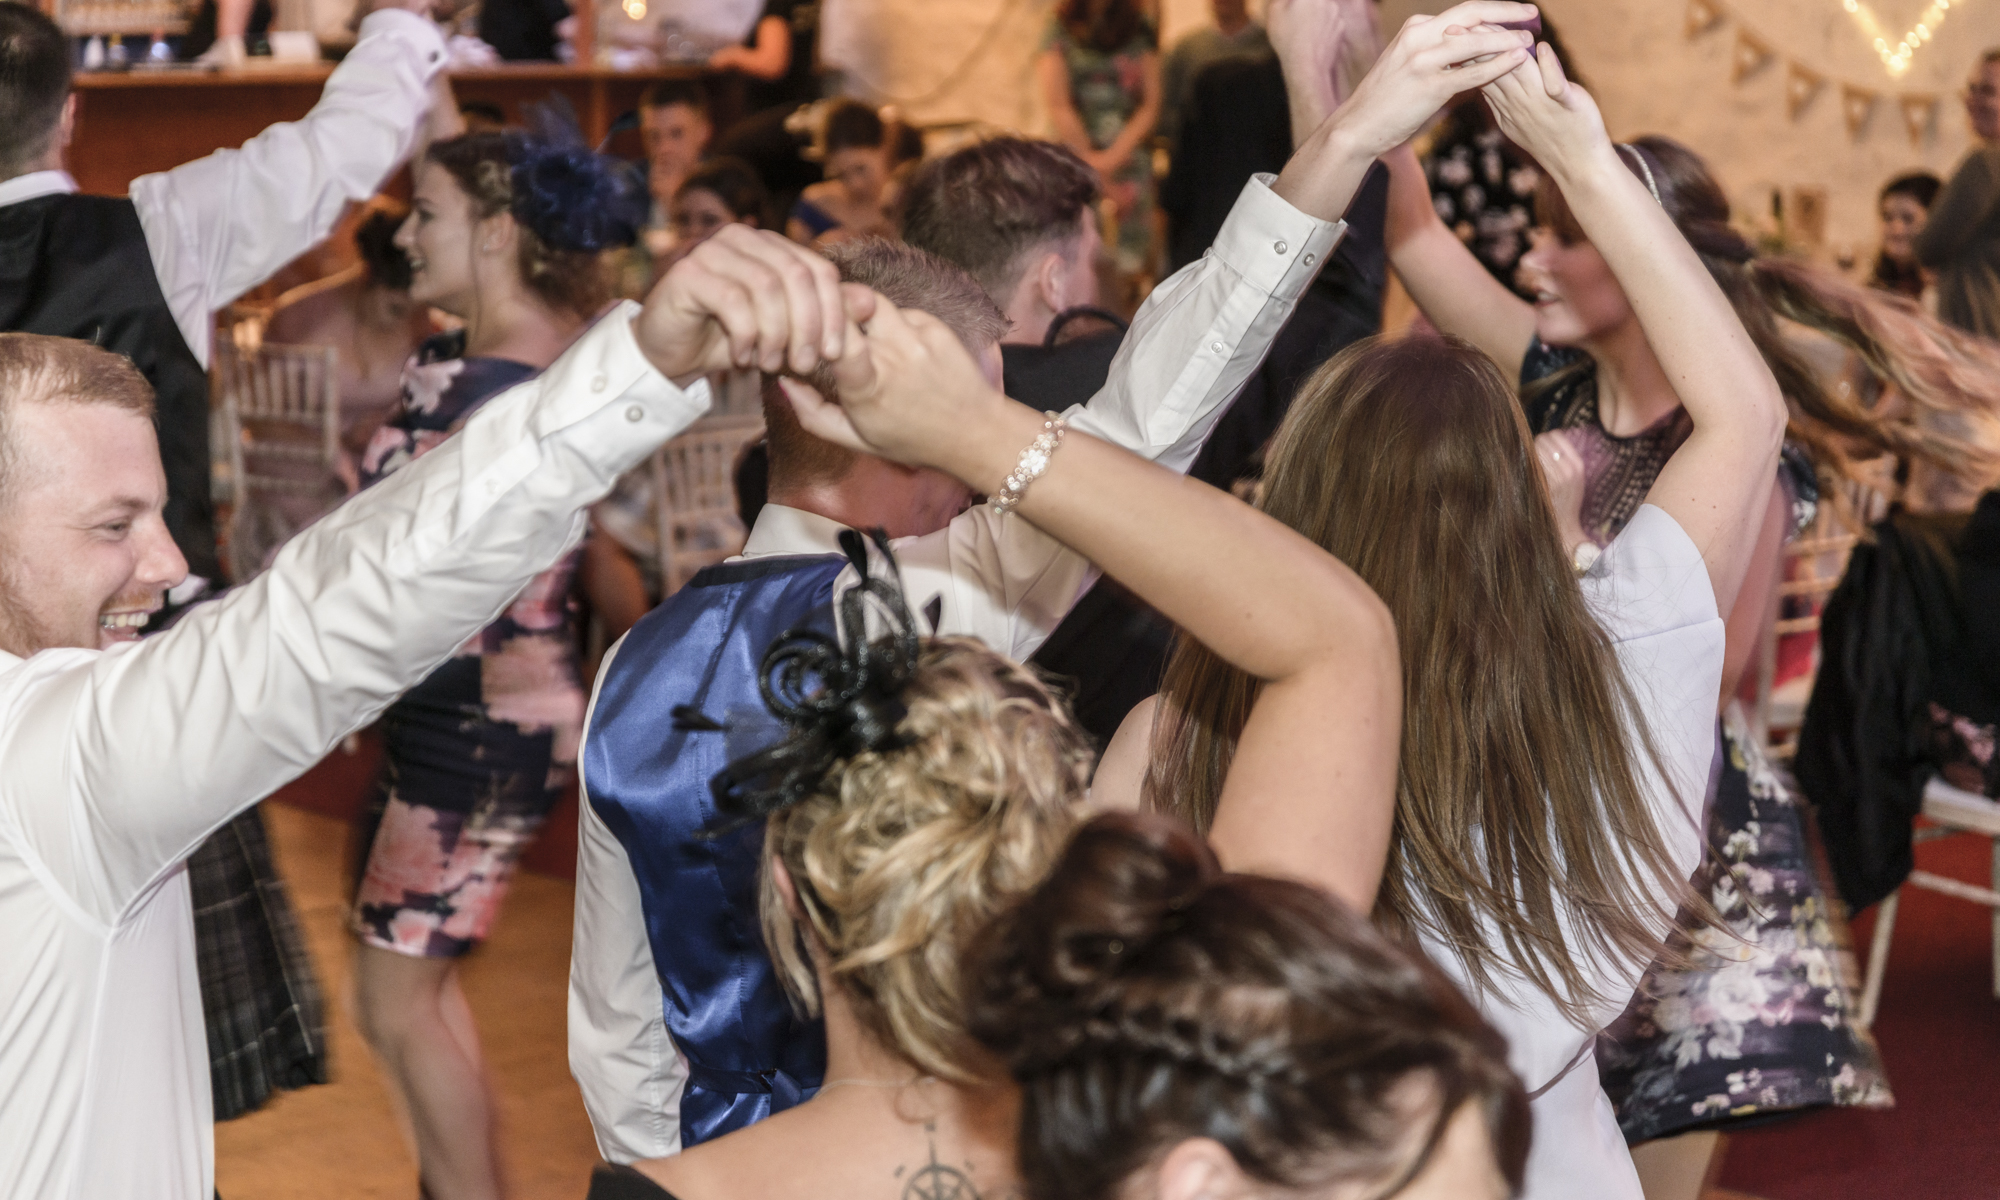 Scottish Country Dancing by Edinburgh Wedding Photographer Ewan Mathers